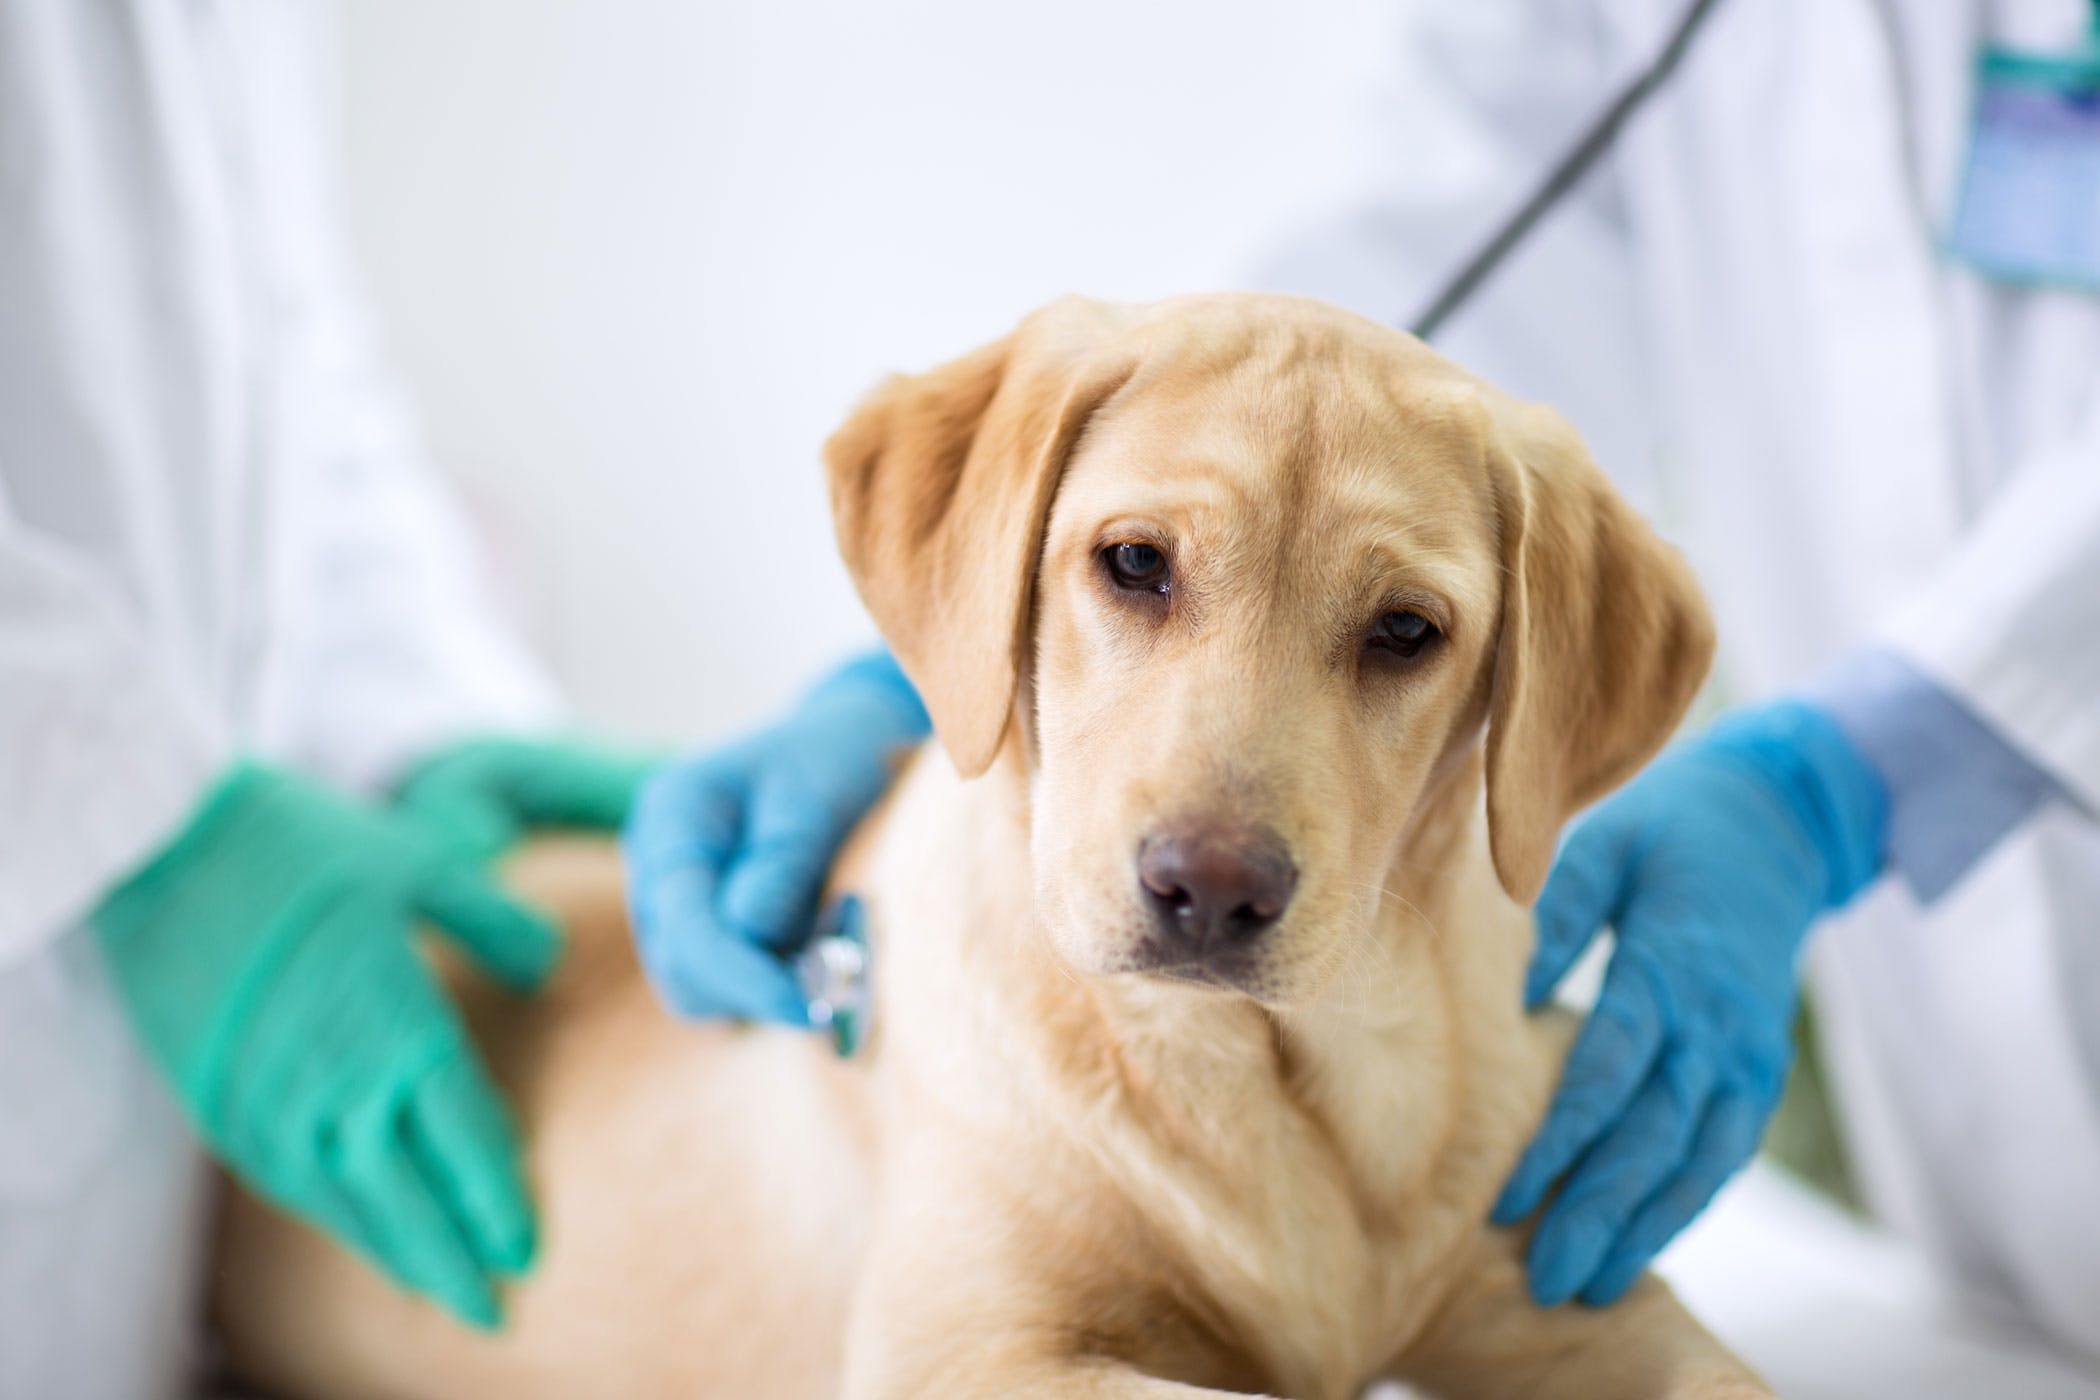 Hand Warmers Metals Poisoning in Dogs - Symptoms, Causes, Diagnosis